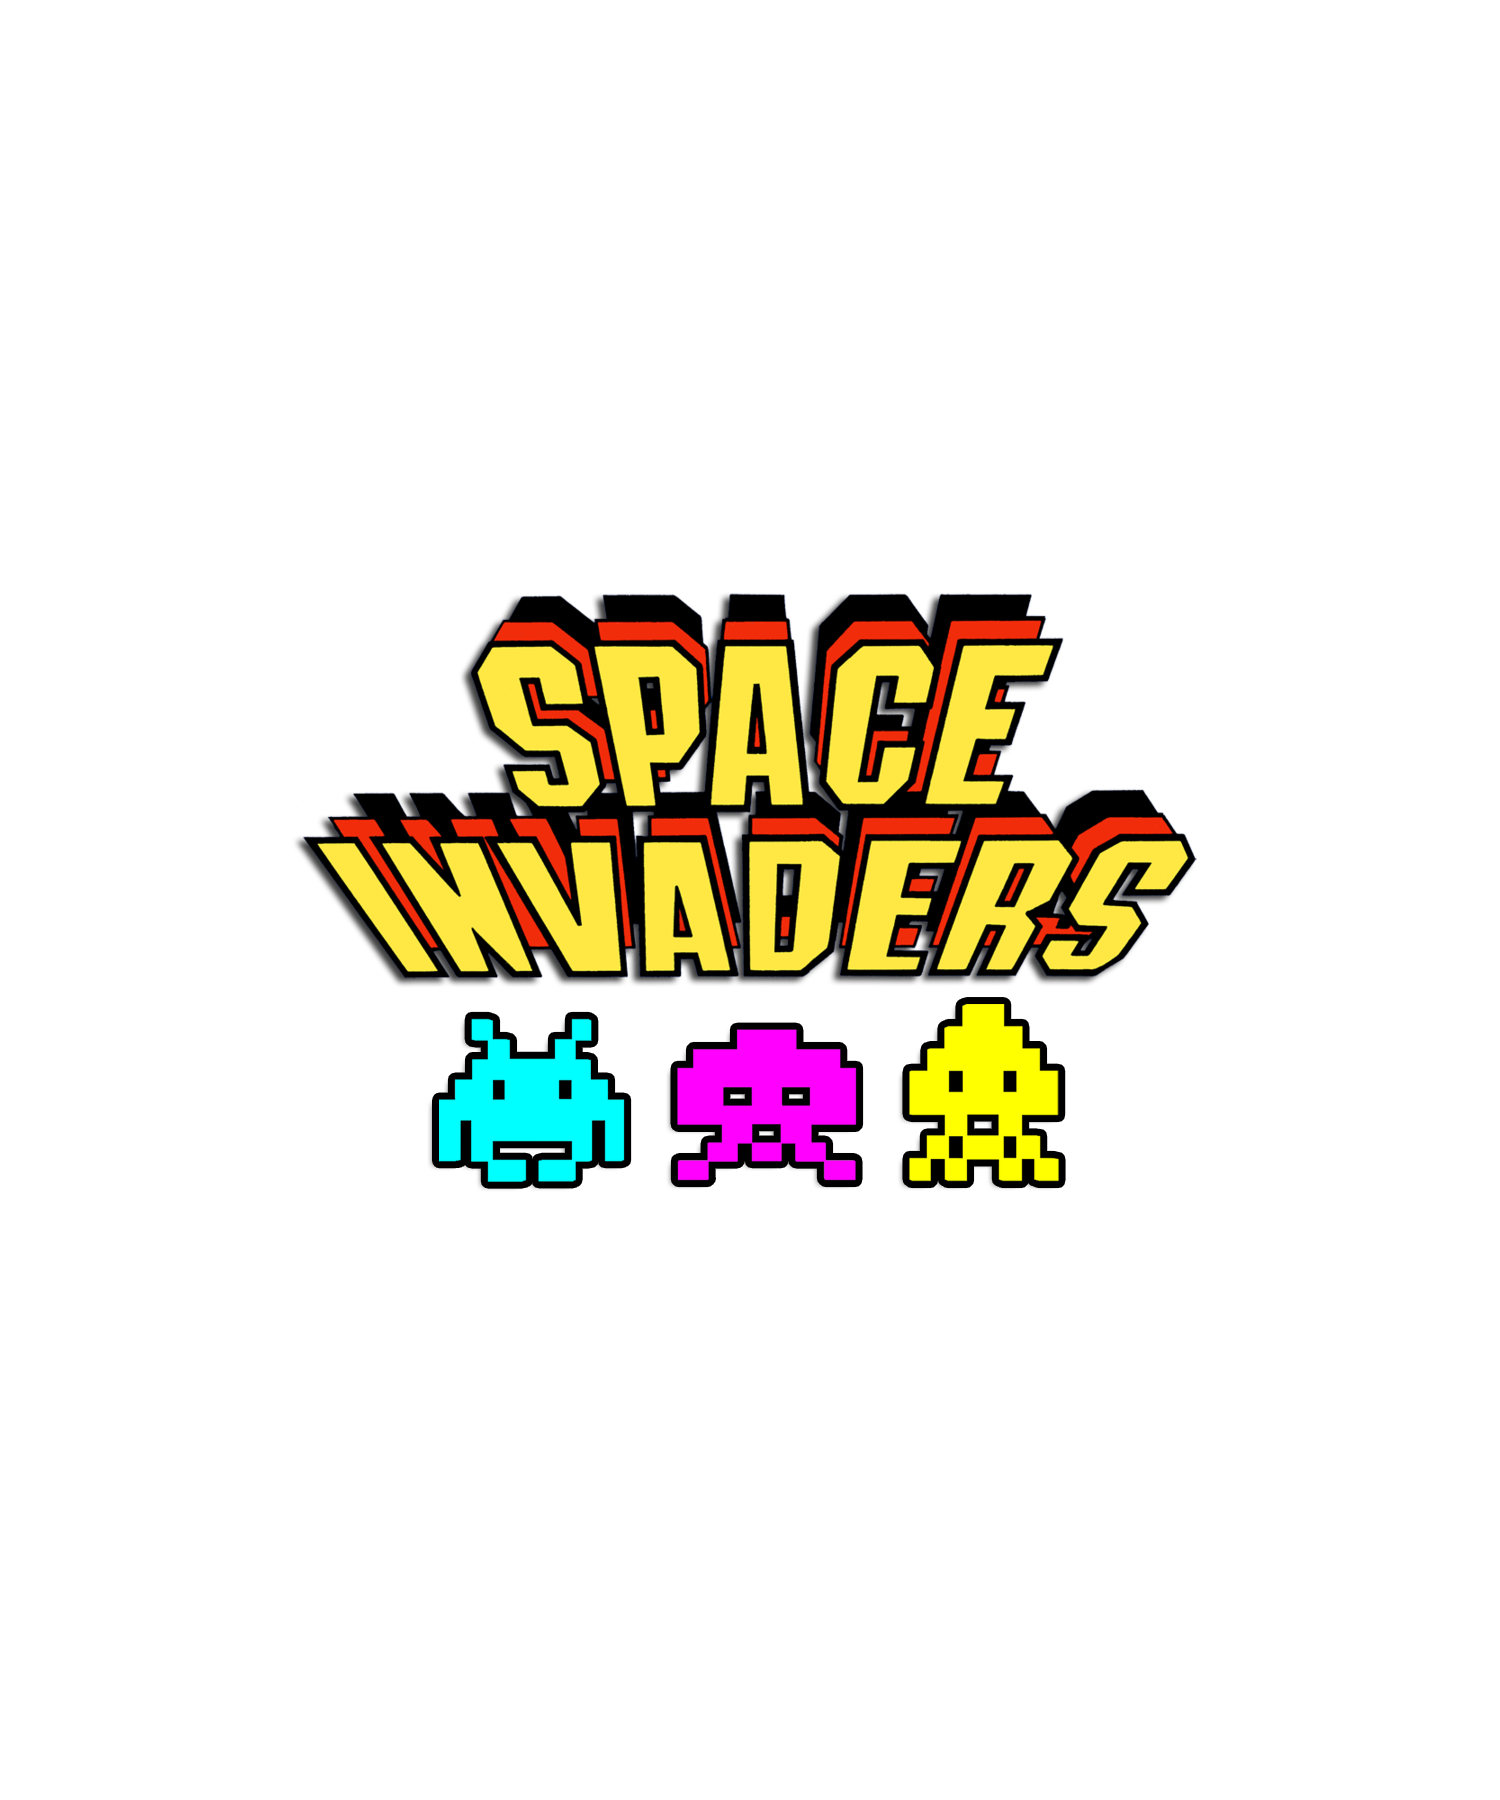 Space Invaders clipart original Invaders Space Wheel VPForums Invaders